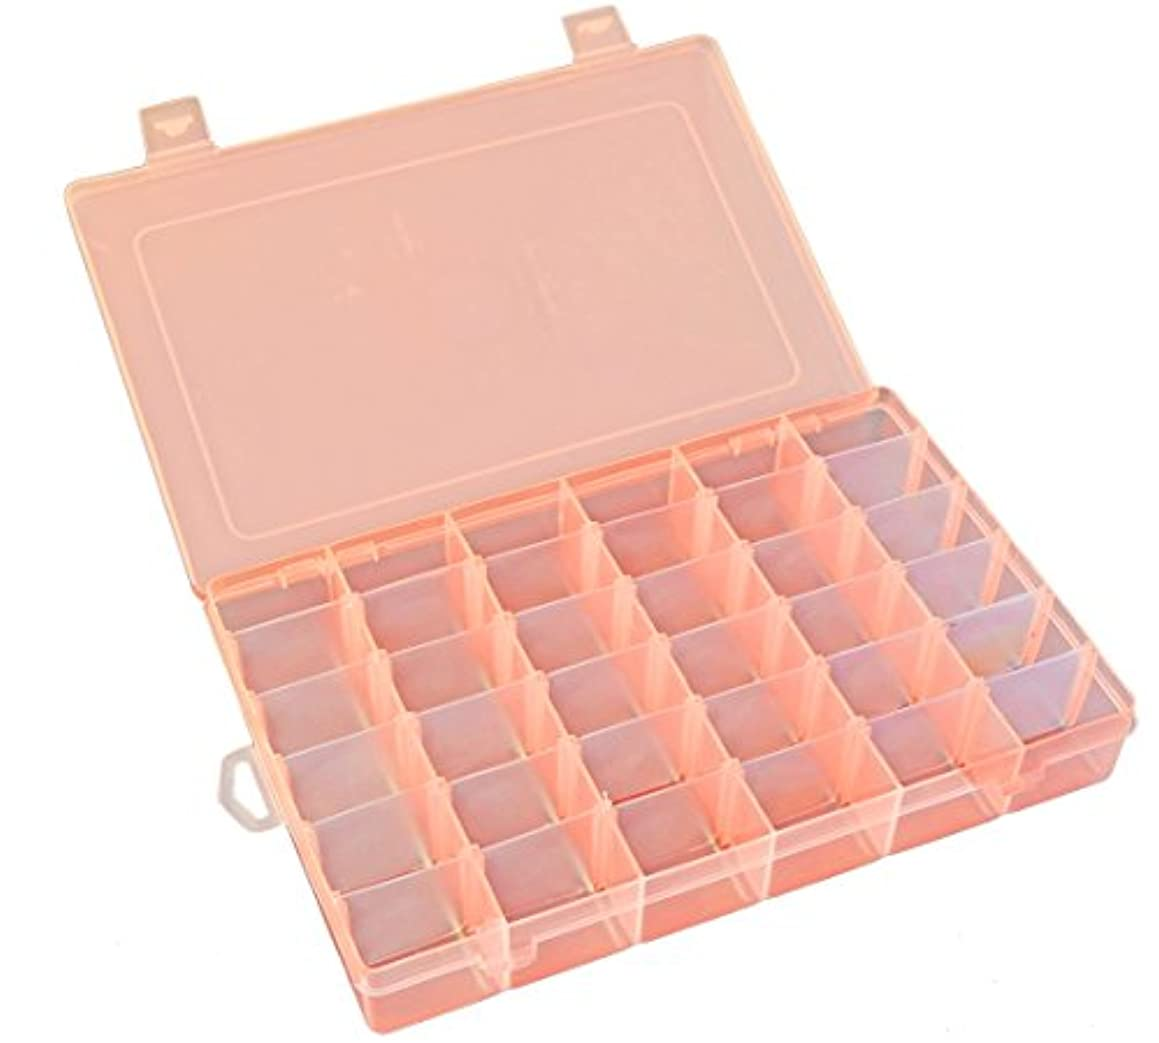 Qualsen Transparent Bead Storage Jewelry Organizer Storage Container Plastic Organizer Box with Adjustable Dividers for Sorting Earrings, Rings, Beads and Other Mini Goods 36 Grid 1PC (Orange)